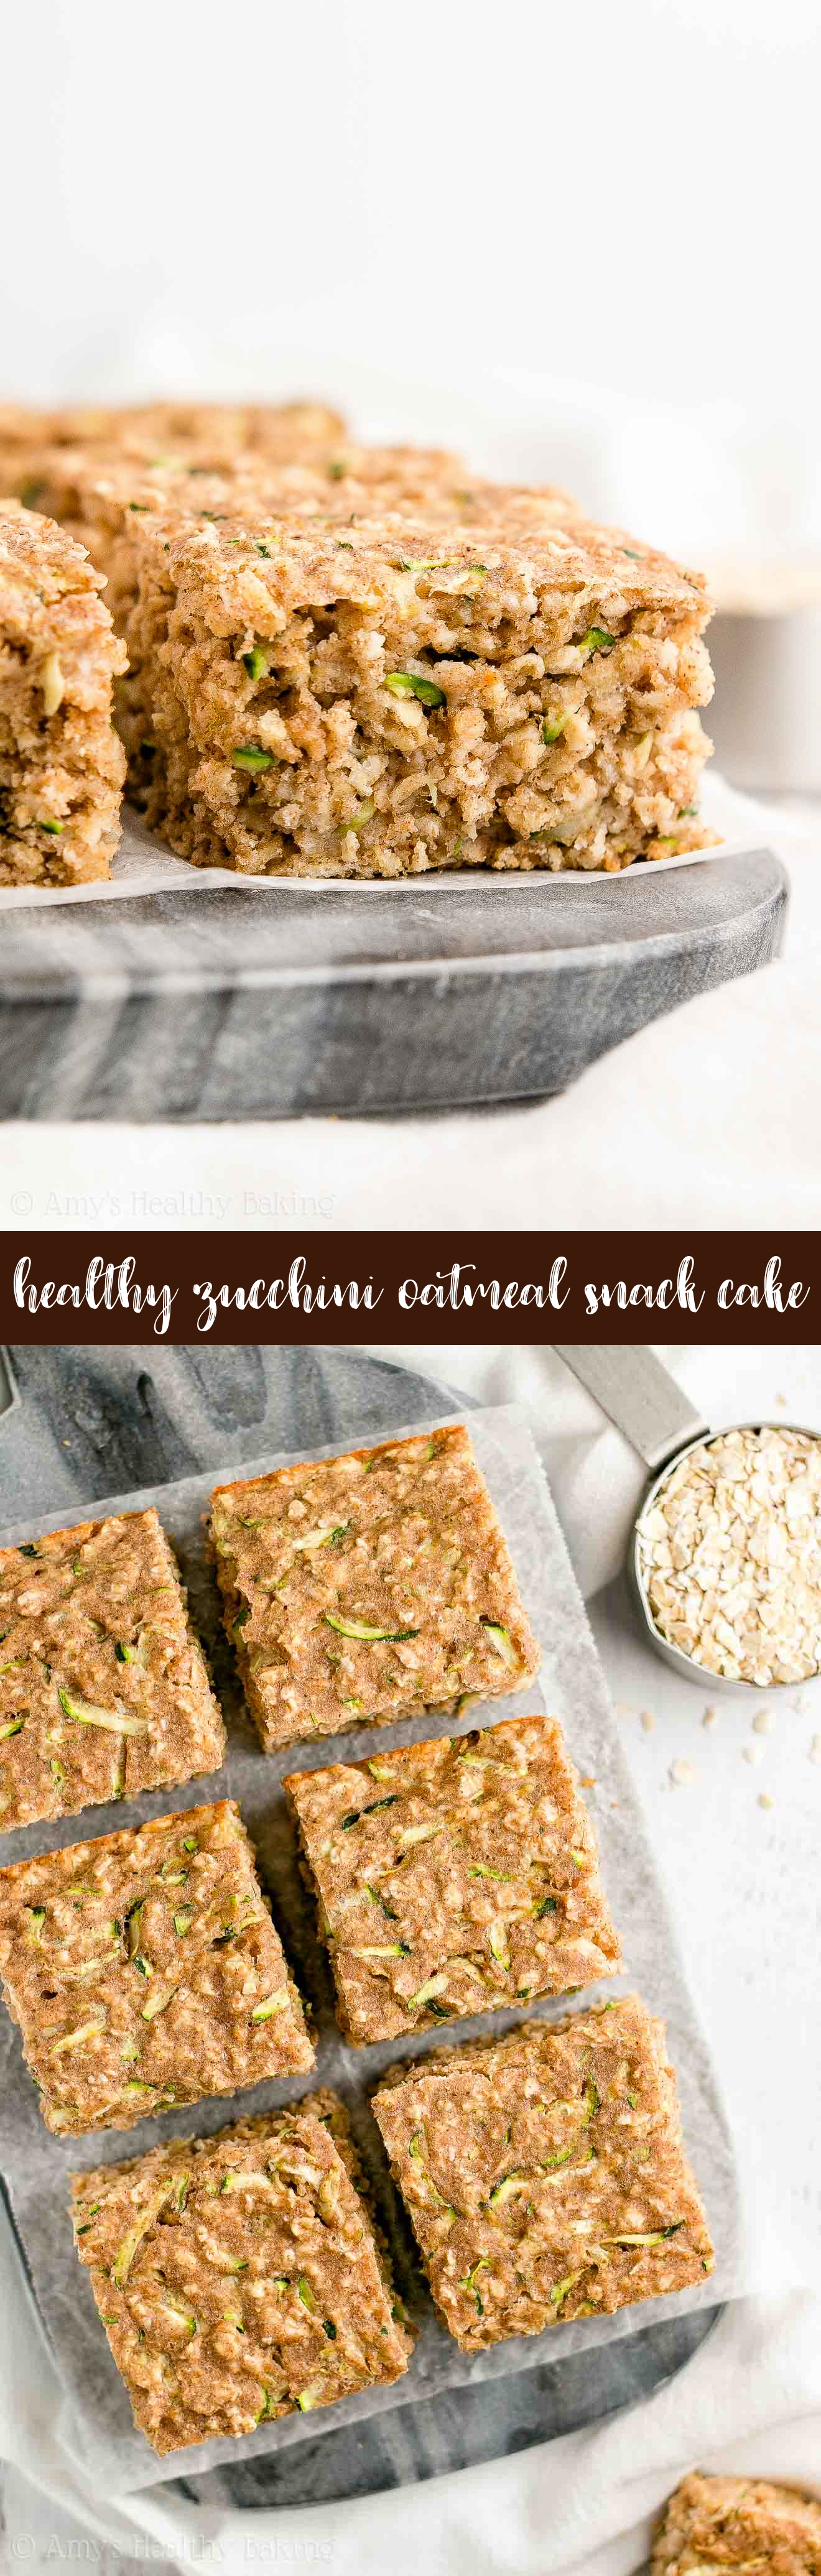 The Best Healthy Zucchini Oatmeal Snack Cake